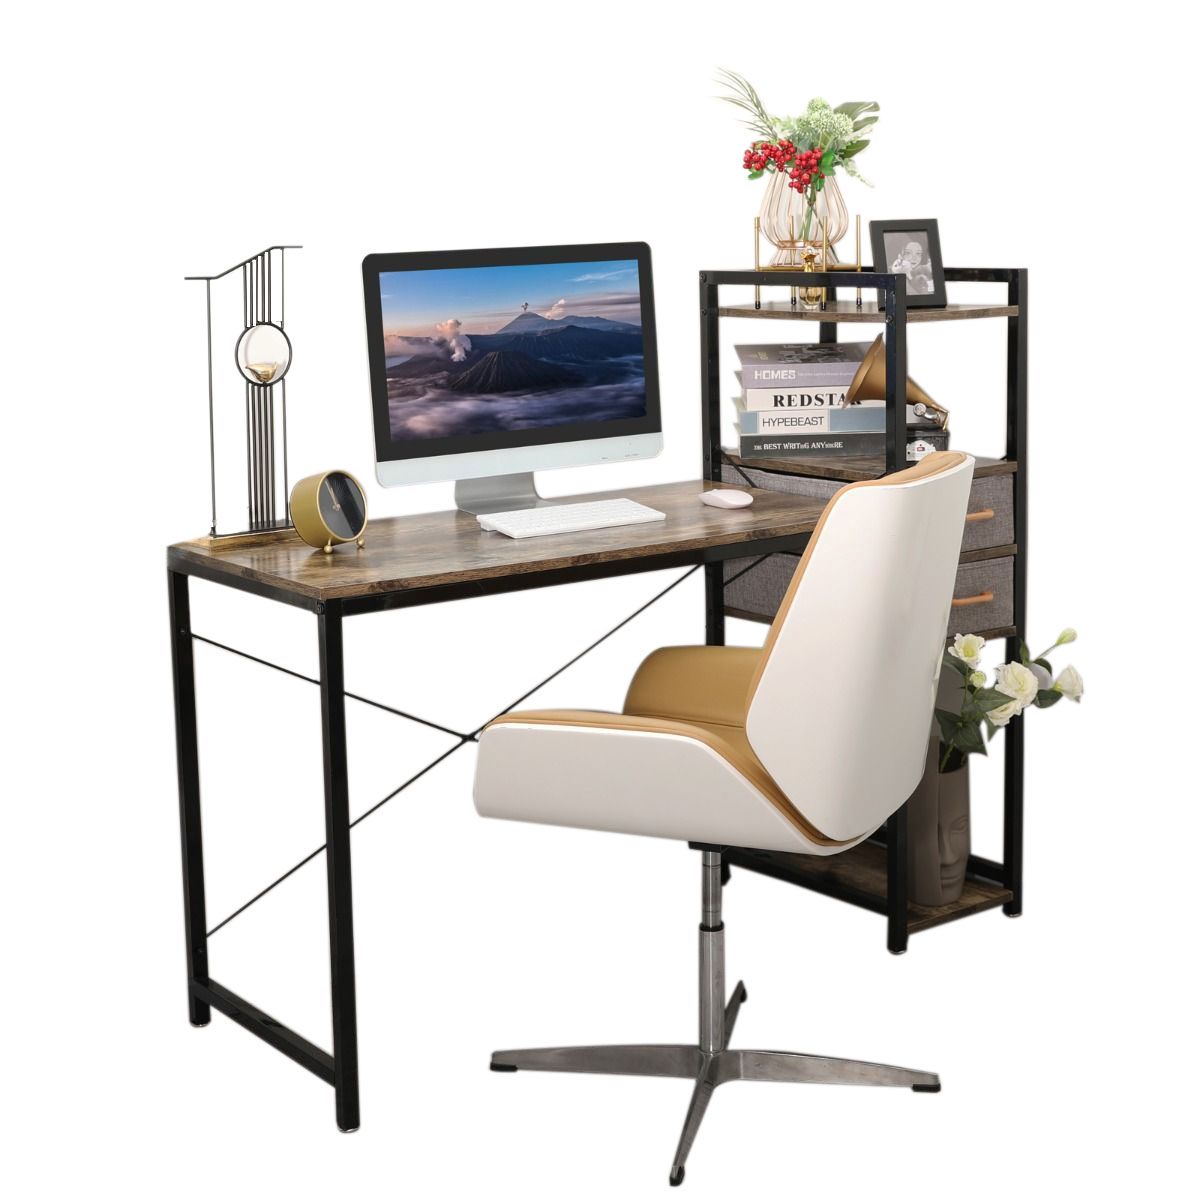 Home Office Computer Desk with Storage Shelf